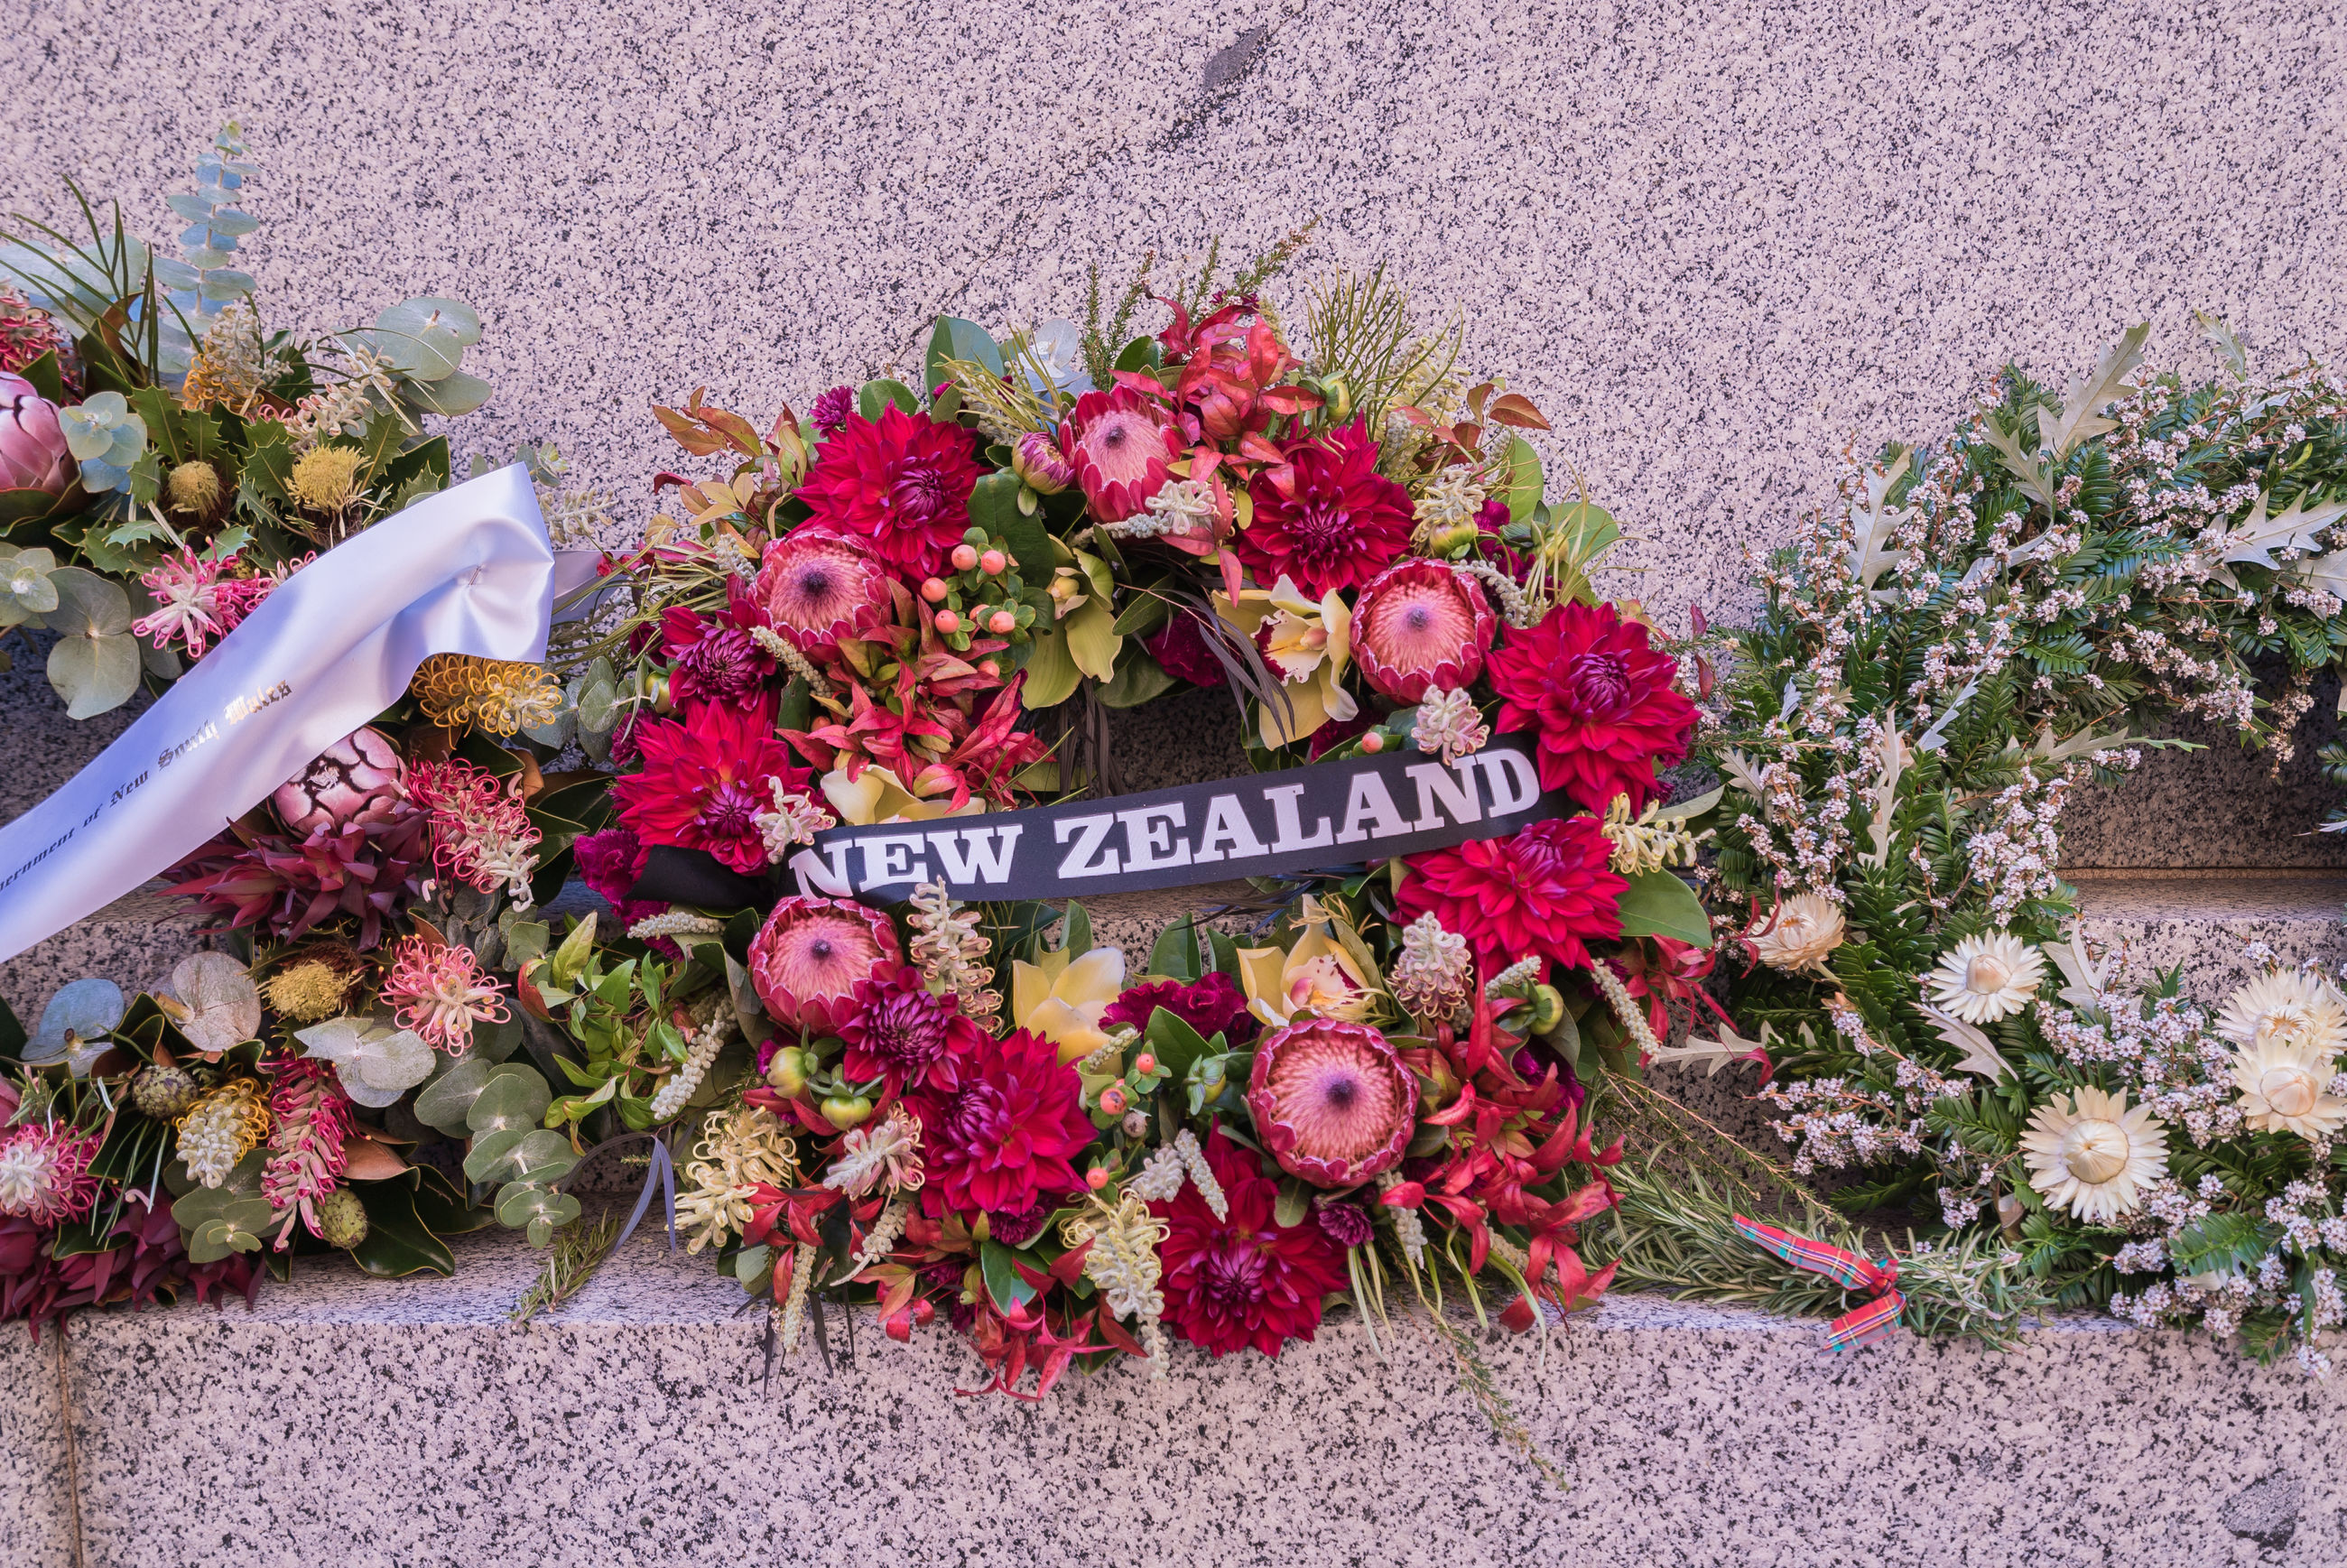 Close-up of wreaths with text